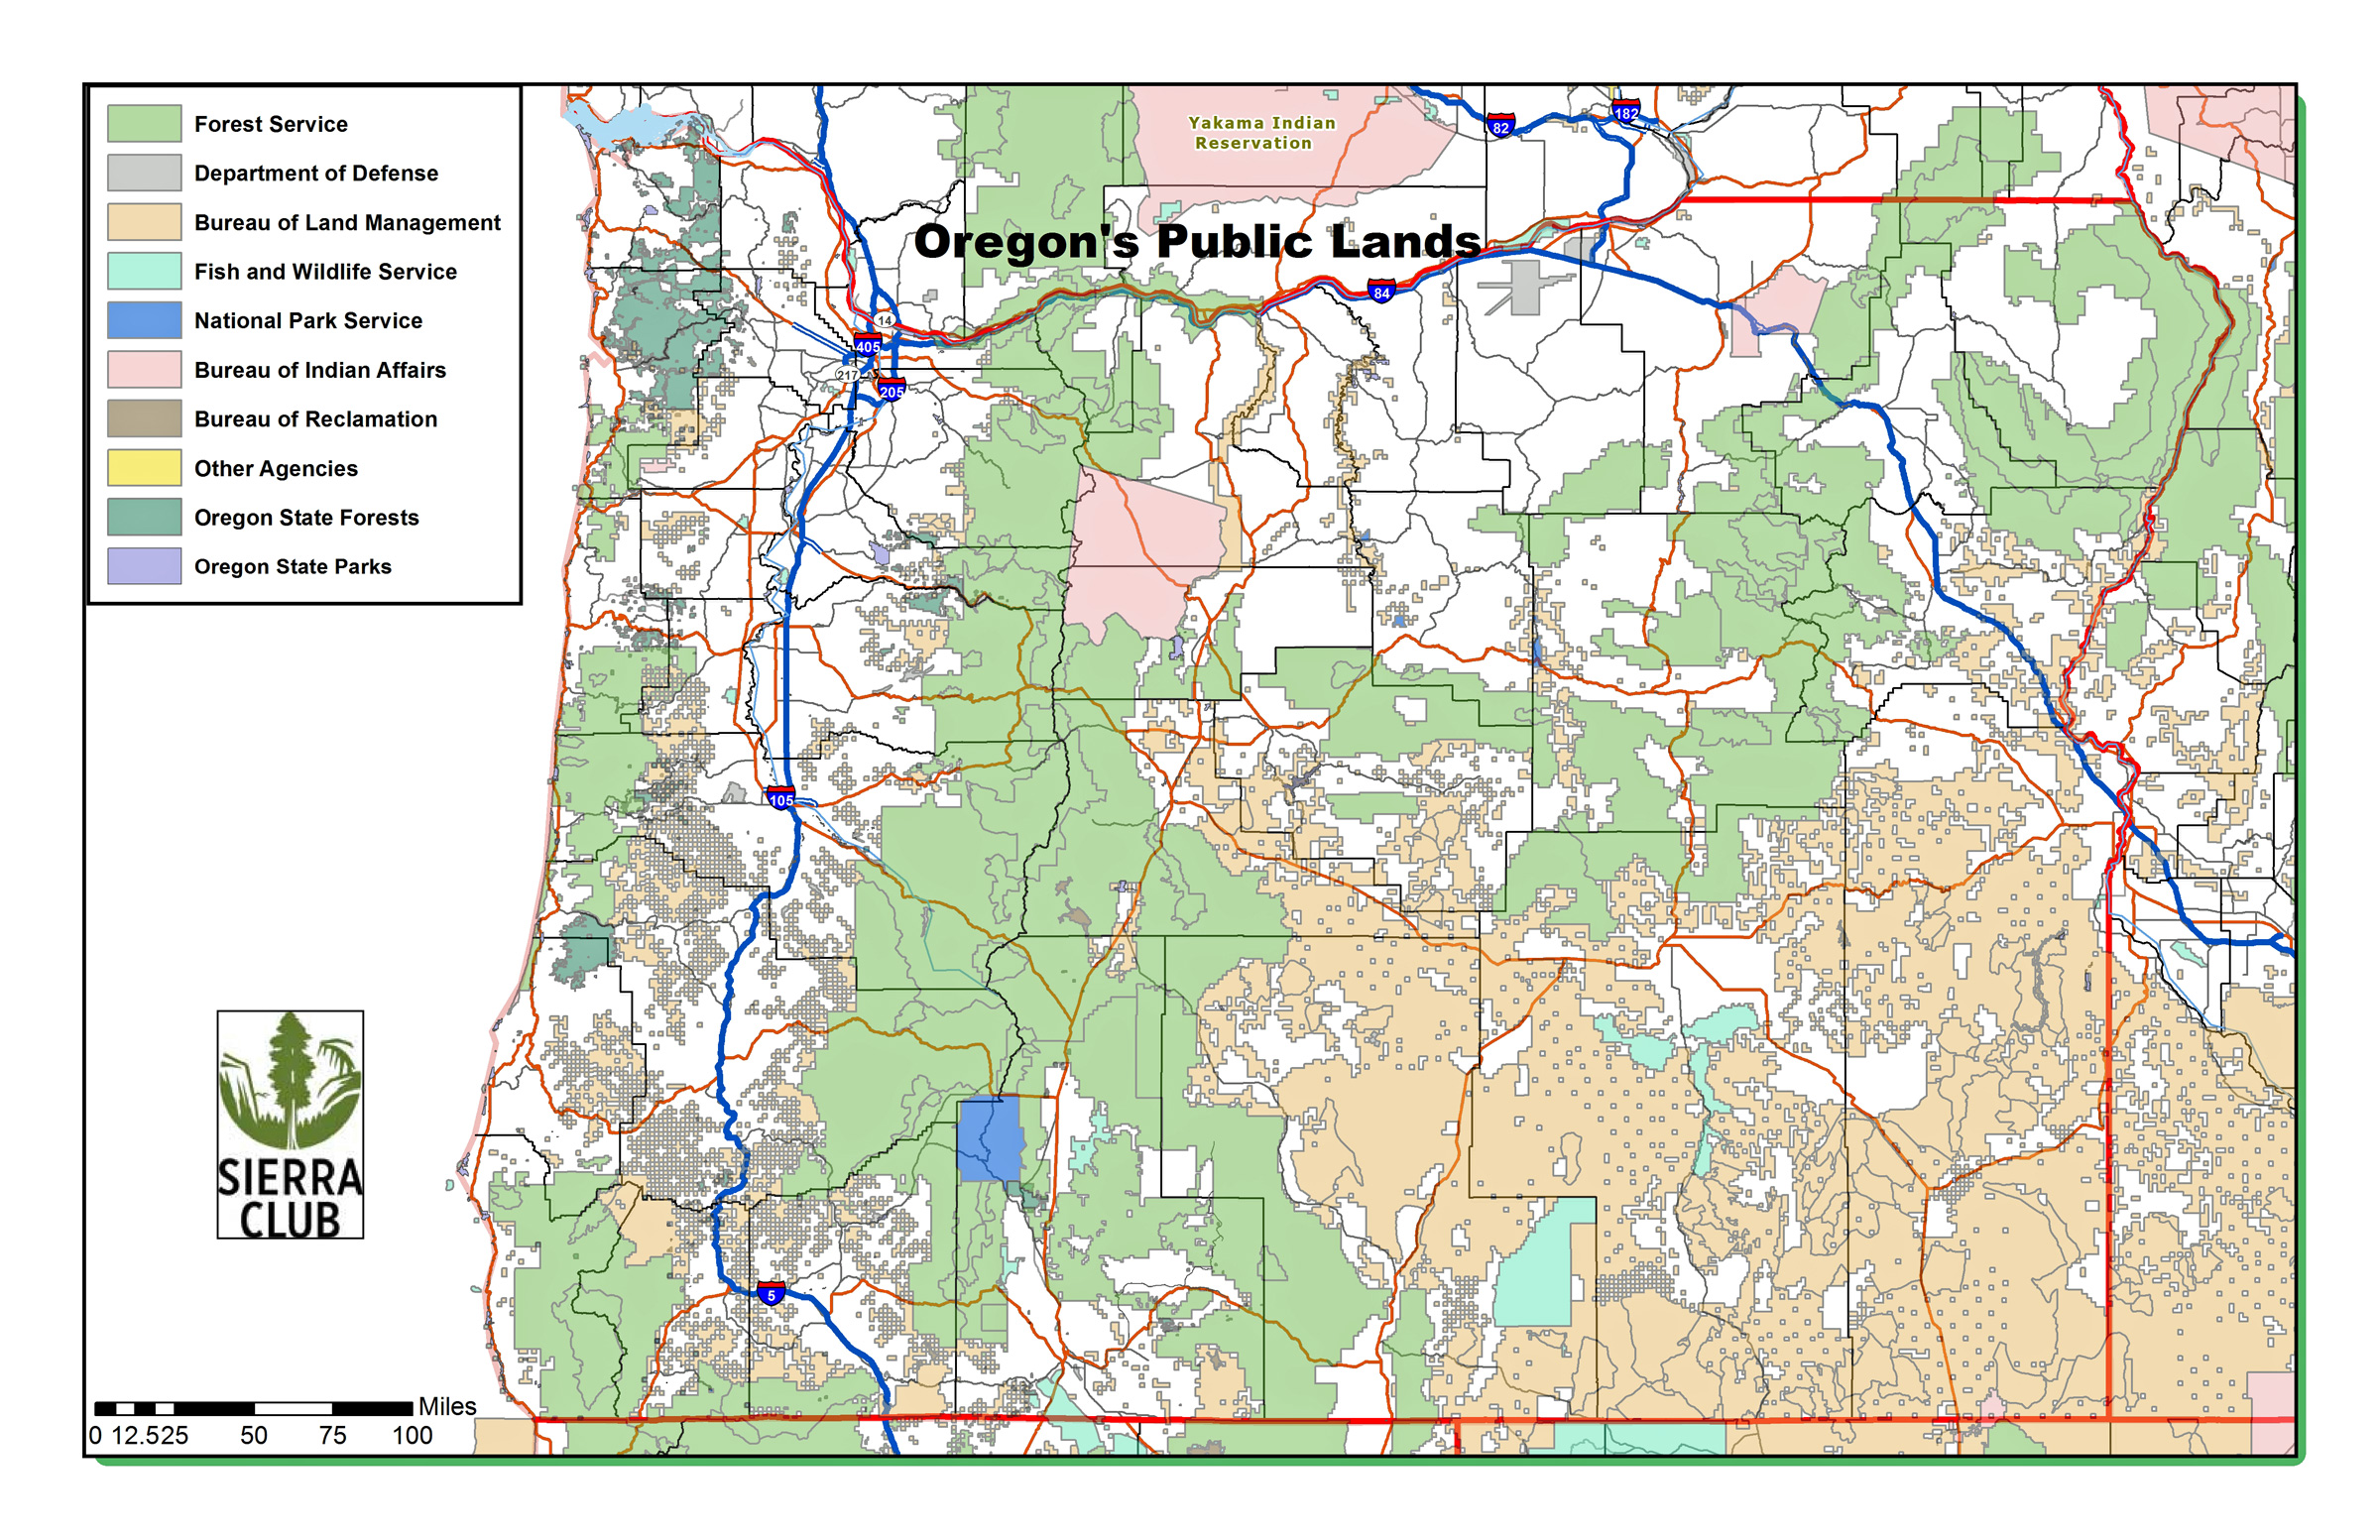 Hi Res Pdf For A Really Close Up Look Open A 5100 Pixel Version Of This Map 1 8 Mb At Oregon Public Lands Pdf Be Patient It Takes A While To Open